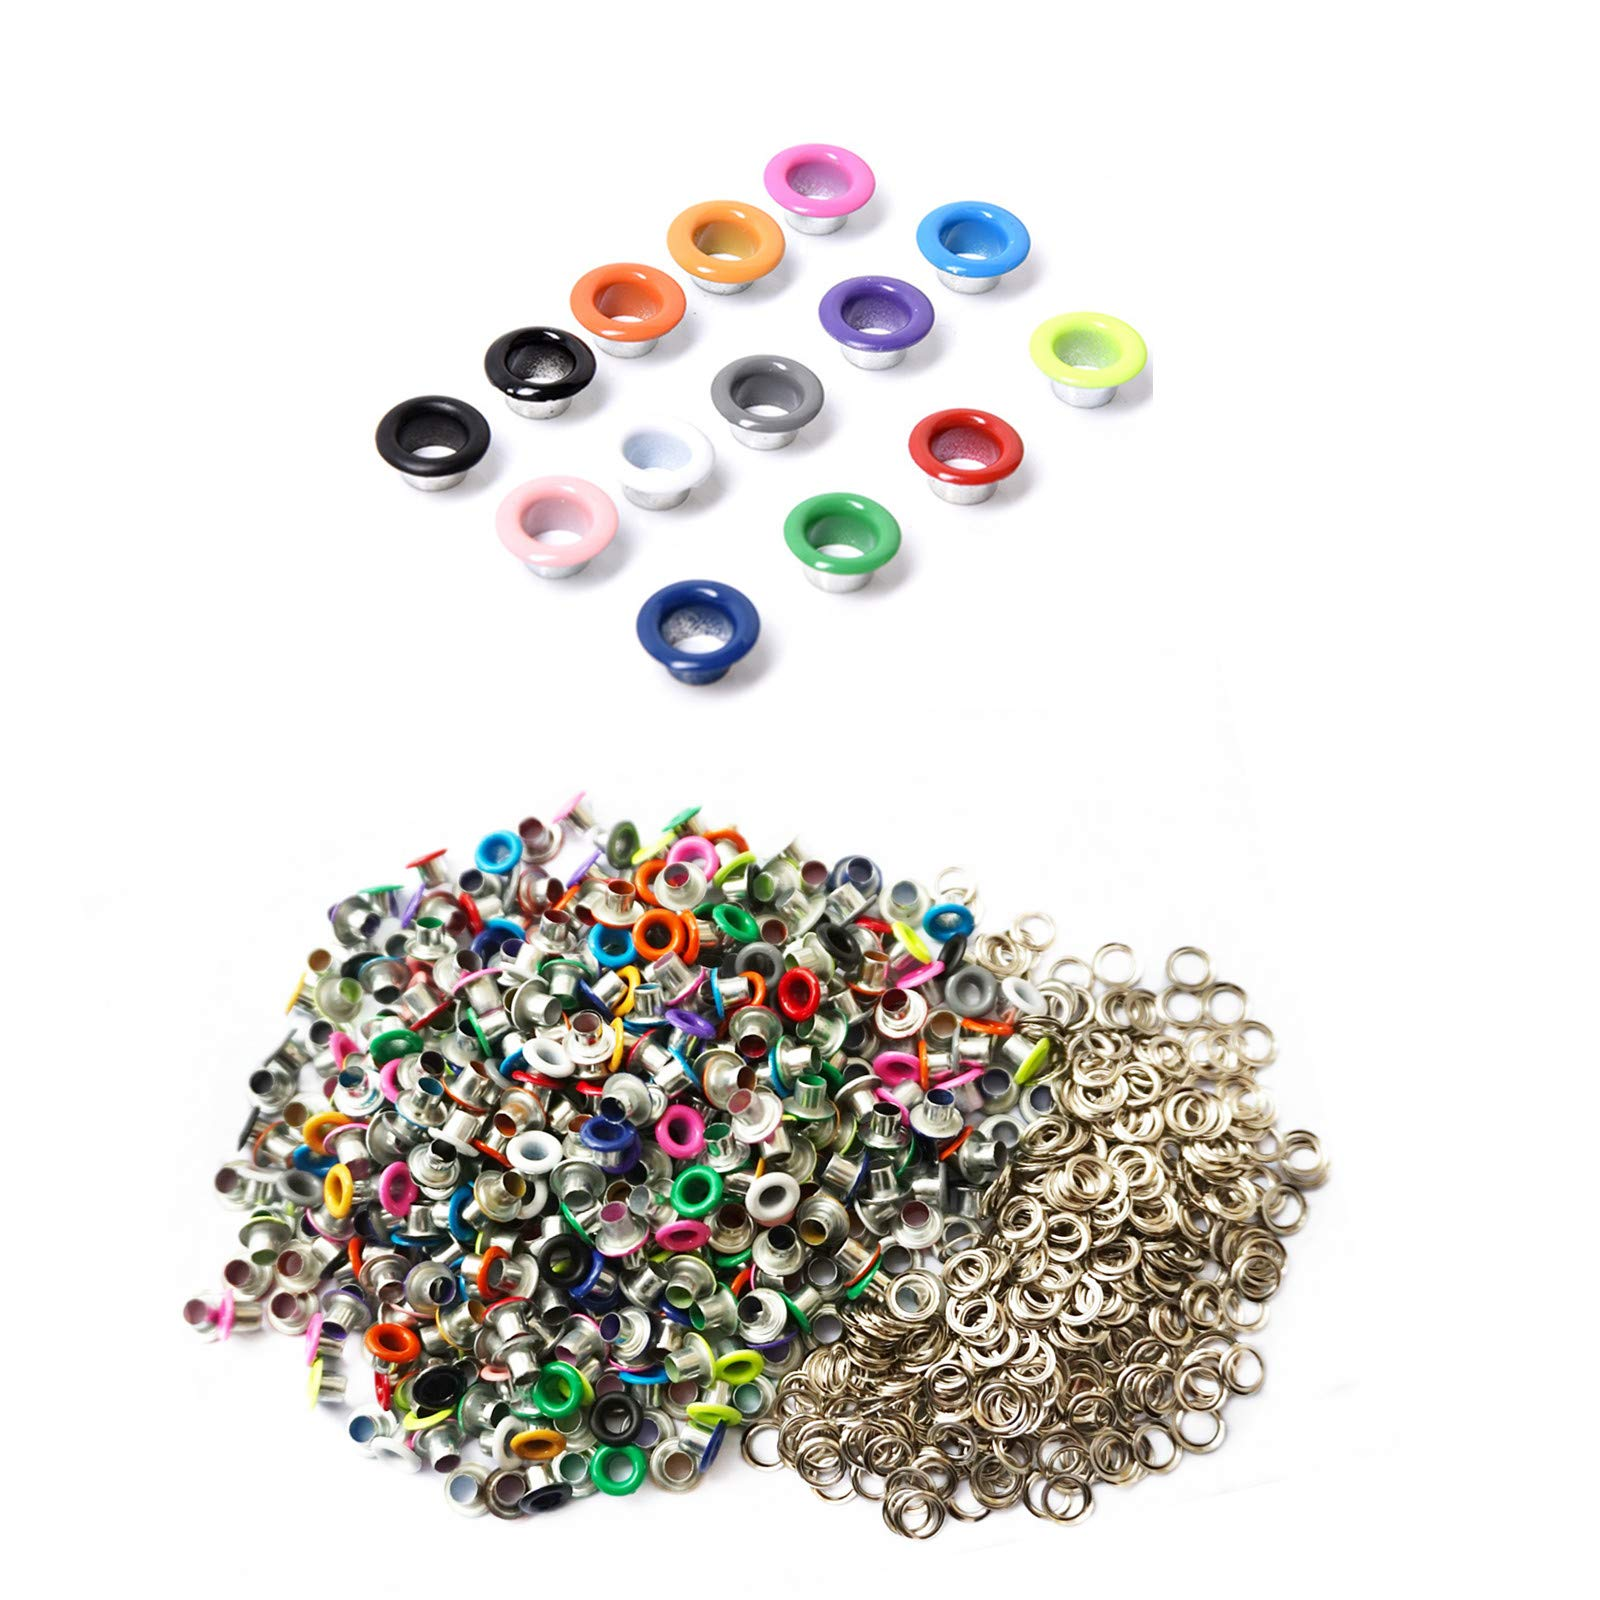 Honkoolly 420 Set 3mm Metal Eyelets Mixed Colors Round Eyelet Grommets for Scrapbooking Card Making Leather Craft Shoes Clothes Paper Craf,30 Set/Colors,14 Colors